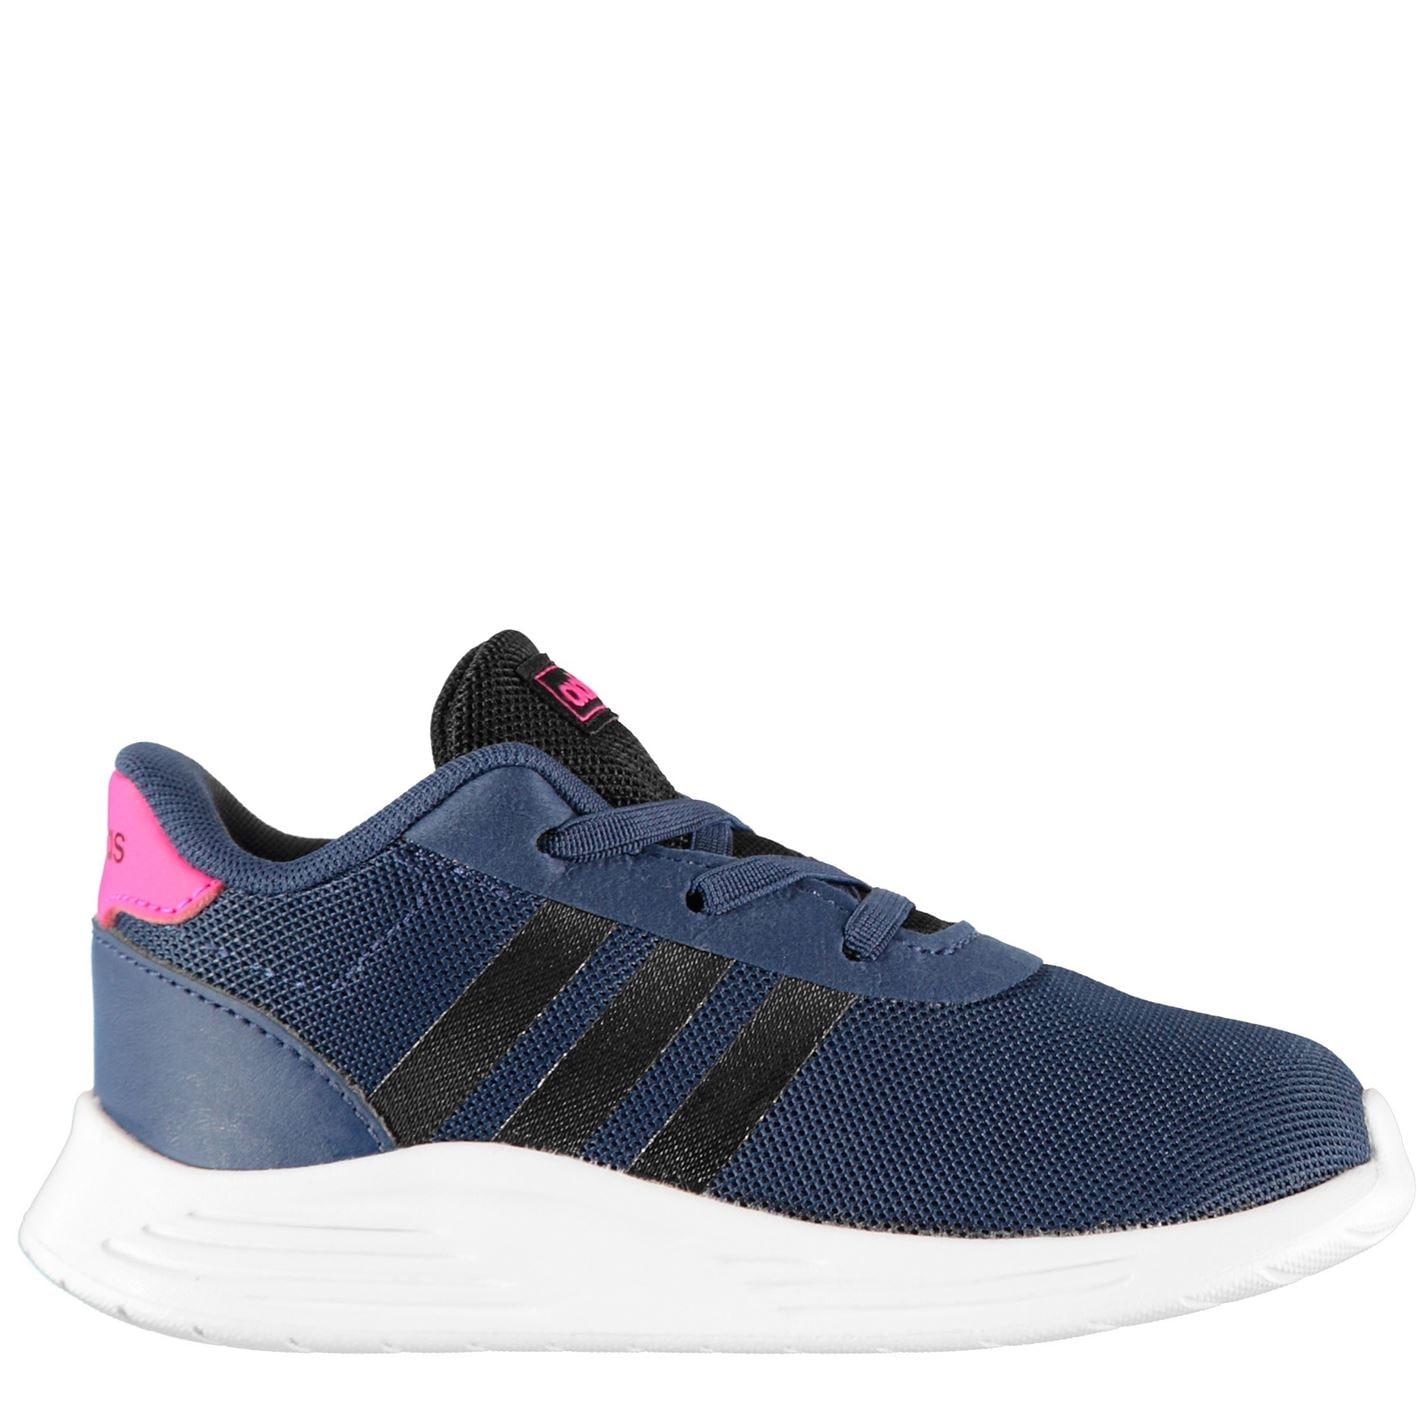 adidas Lite Racer 2 Infant Girls Trainers Navy/Blk/Pink